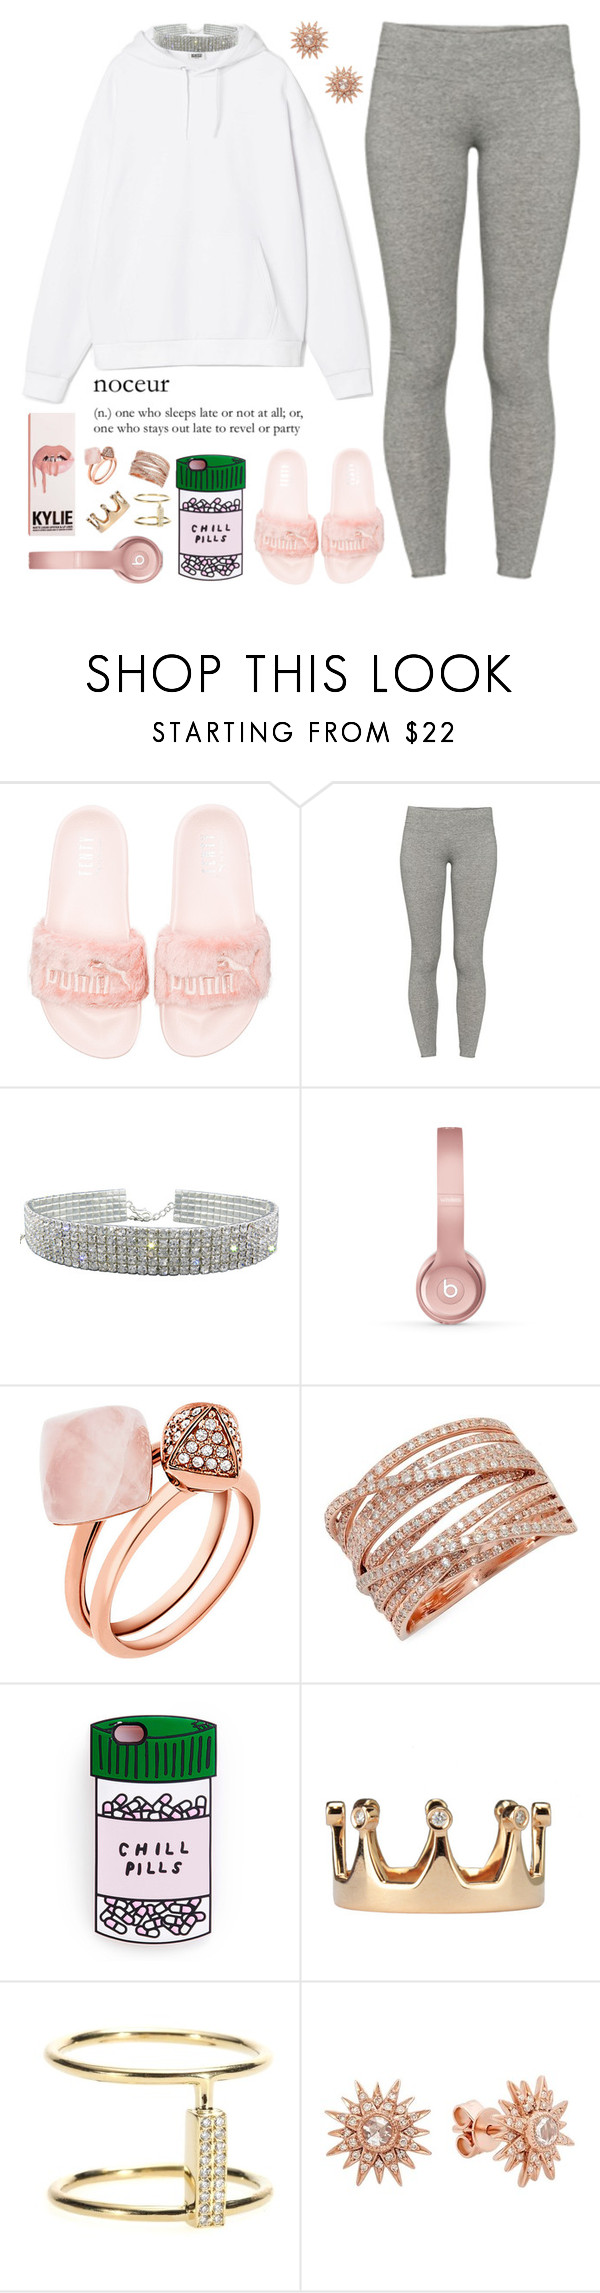 """""""P's And Q's"""" by love-rebelwolf ❤ liked on Polyvore featuring TNA, Beats by Dr. Dre, Michael Kors, Dada Arrigoni and Ileana Makri"""